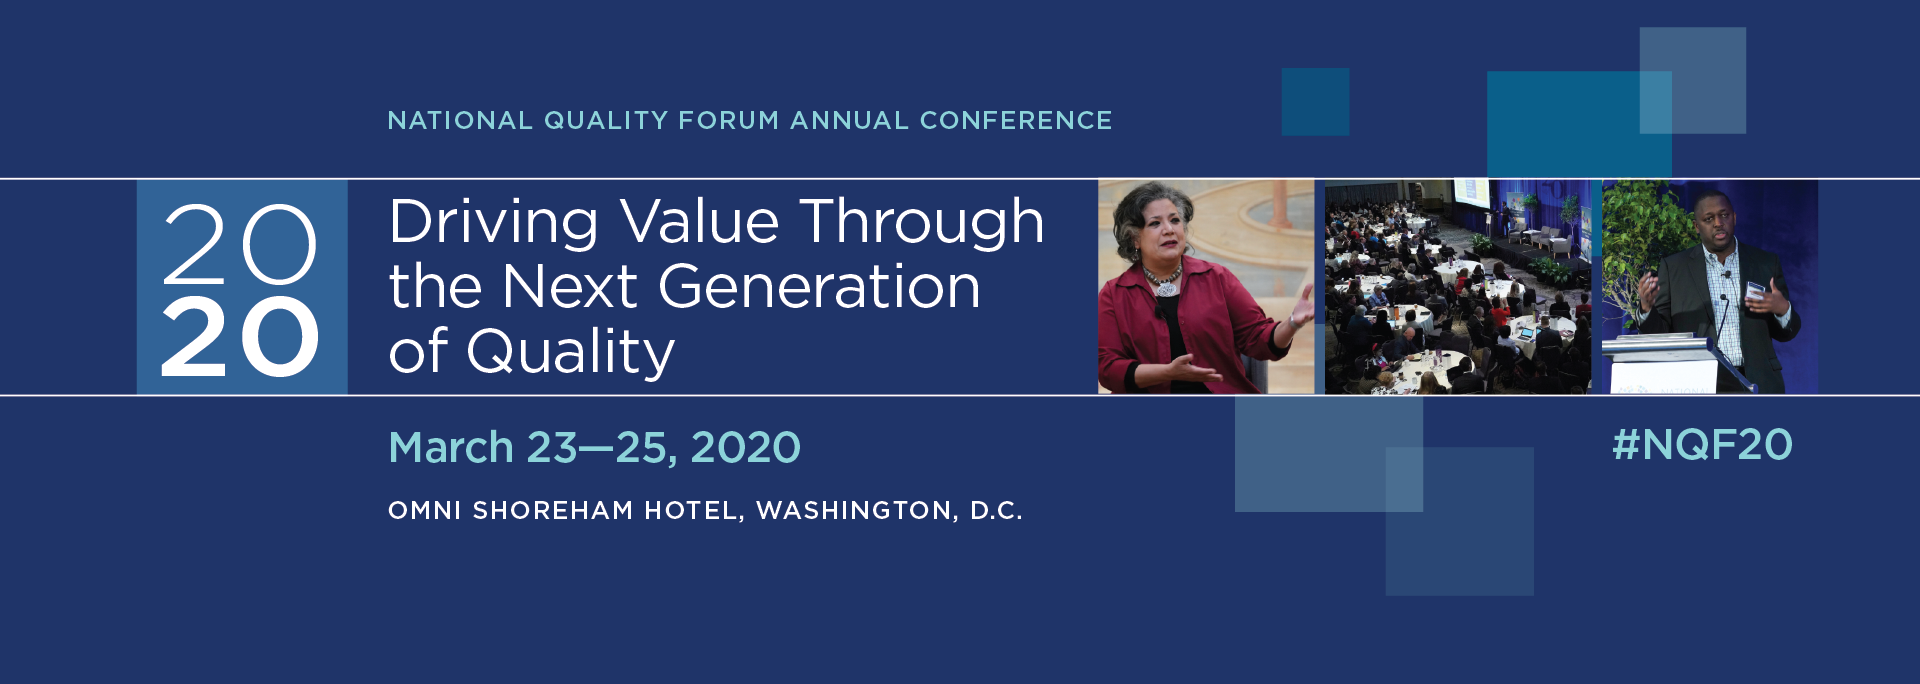 "2020 National Quality Forum Annual Conference, ""Driving Value Through the Next Generation of Quality"""